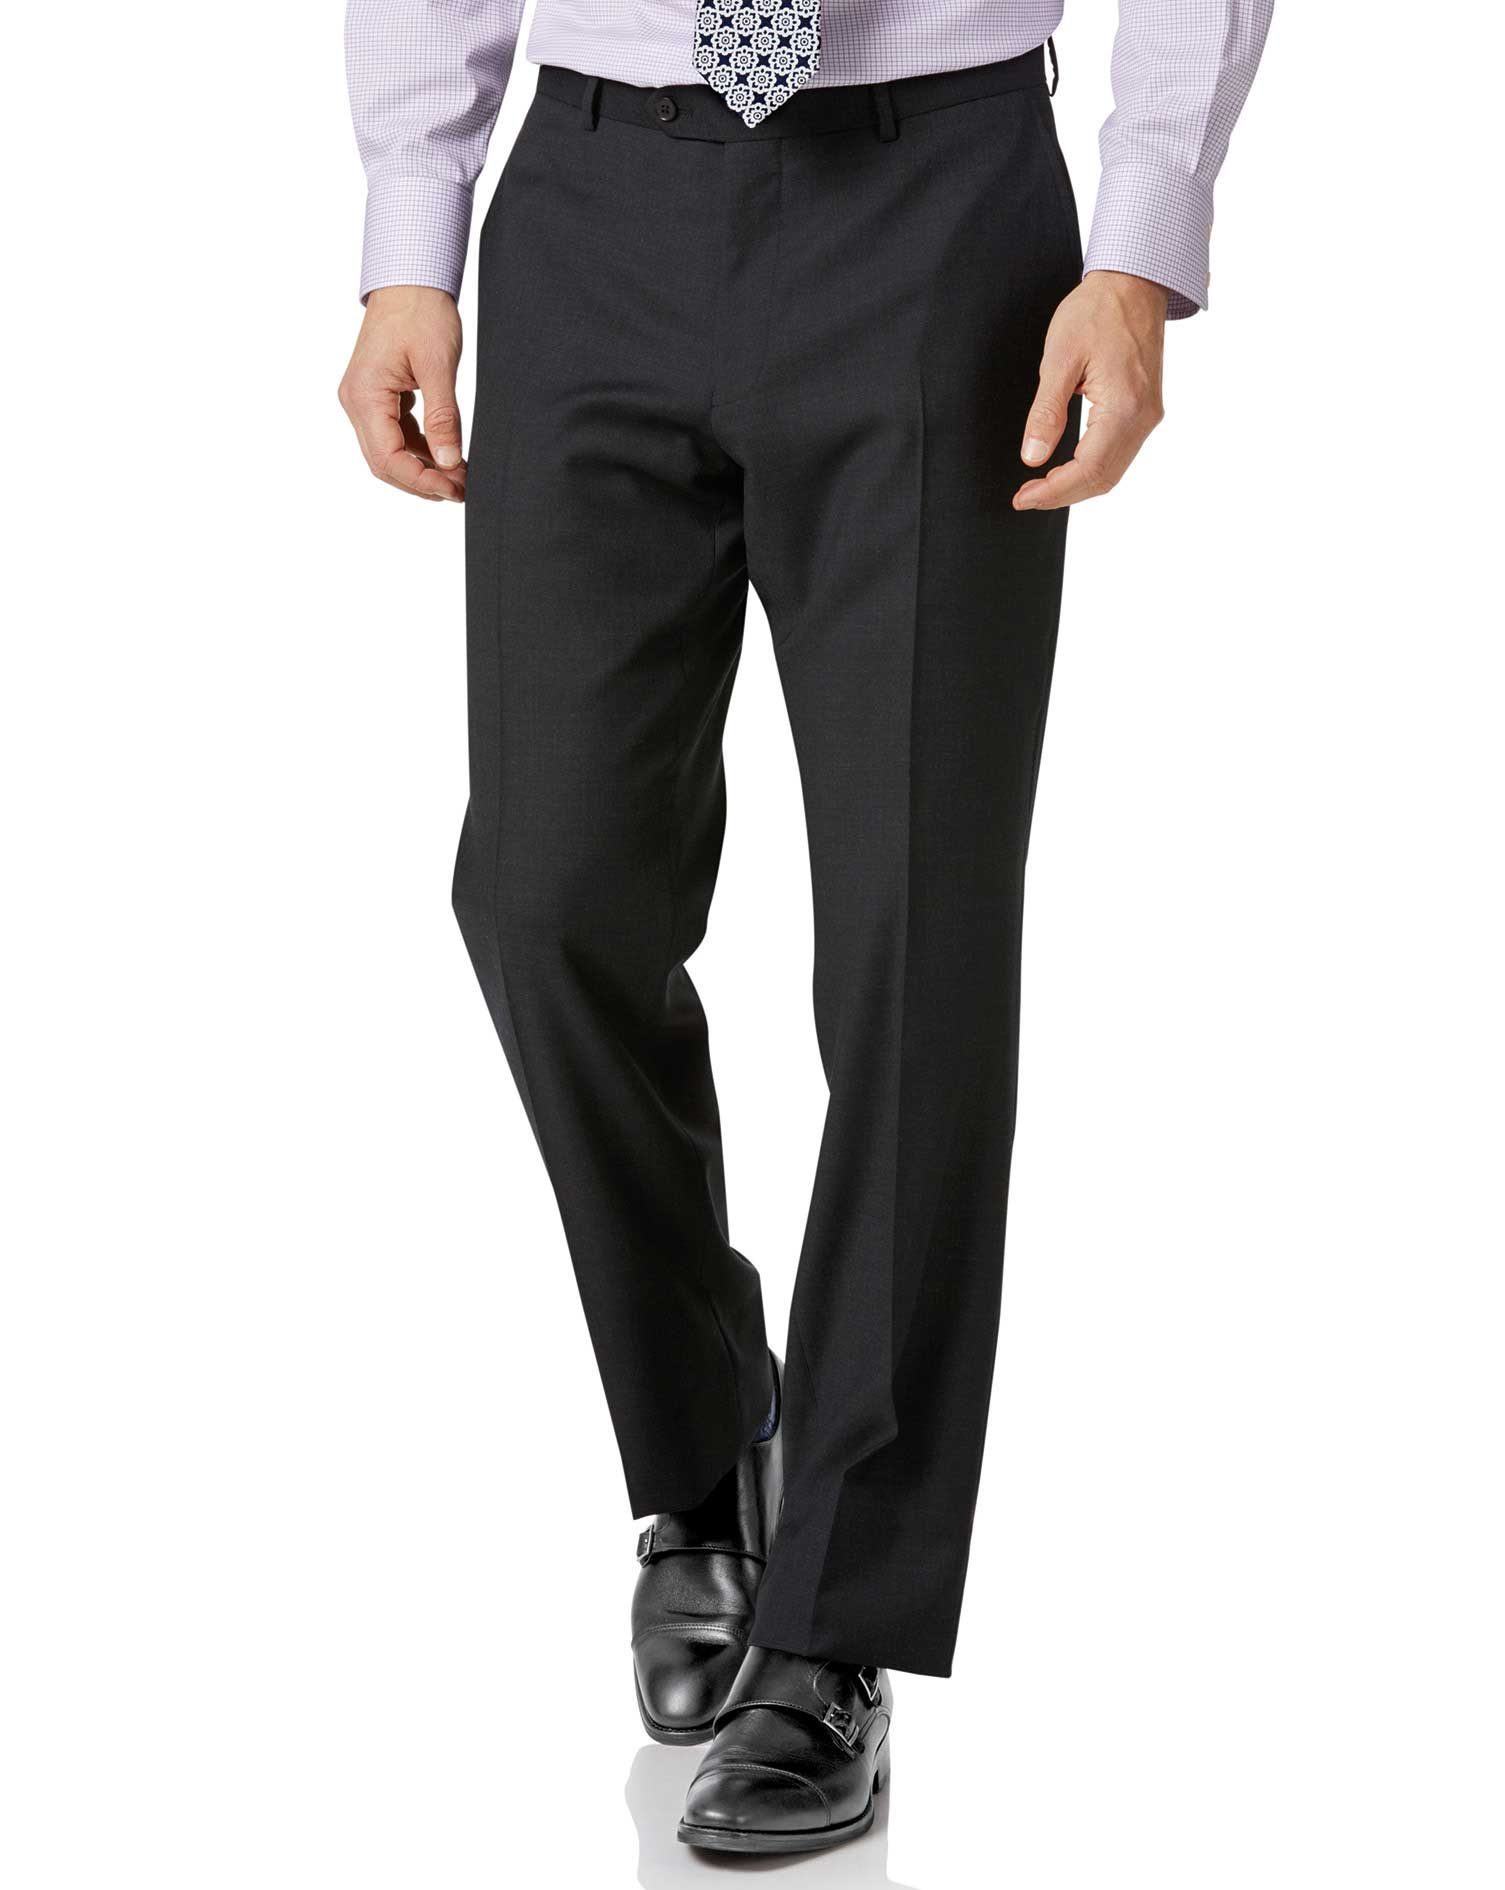 Charcoal Classic Fit Twill Business Suit Trousers Size W42 L32 by Charles Tyrwhitt